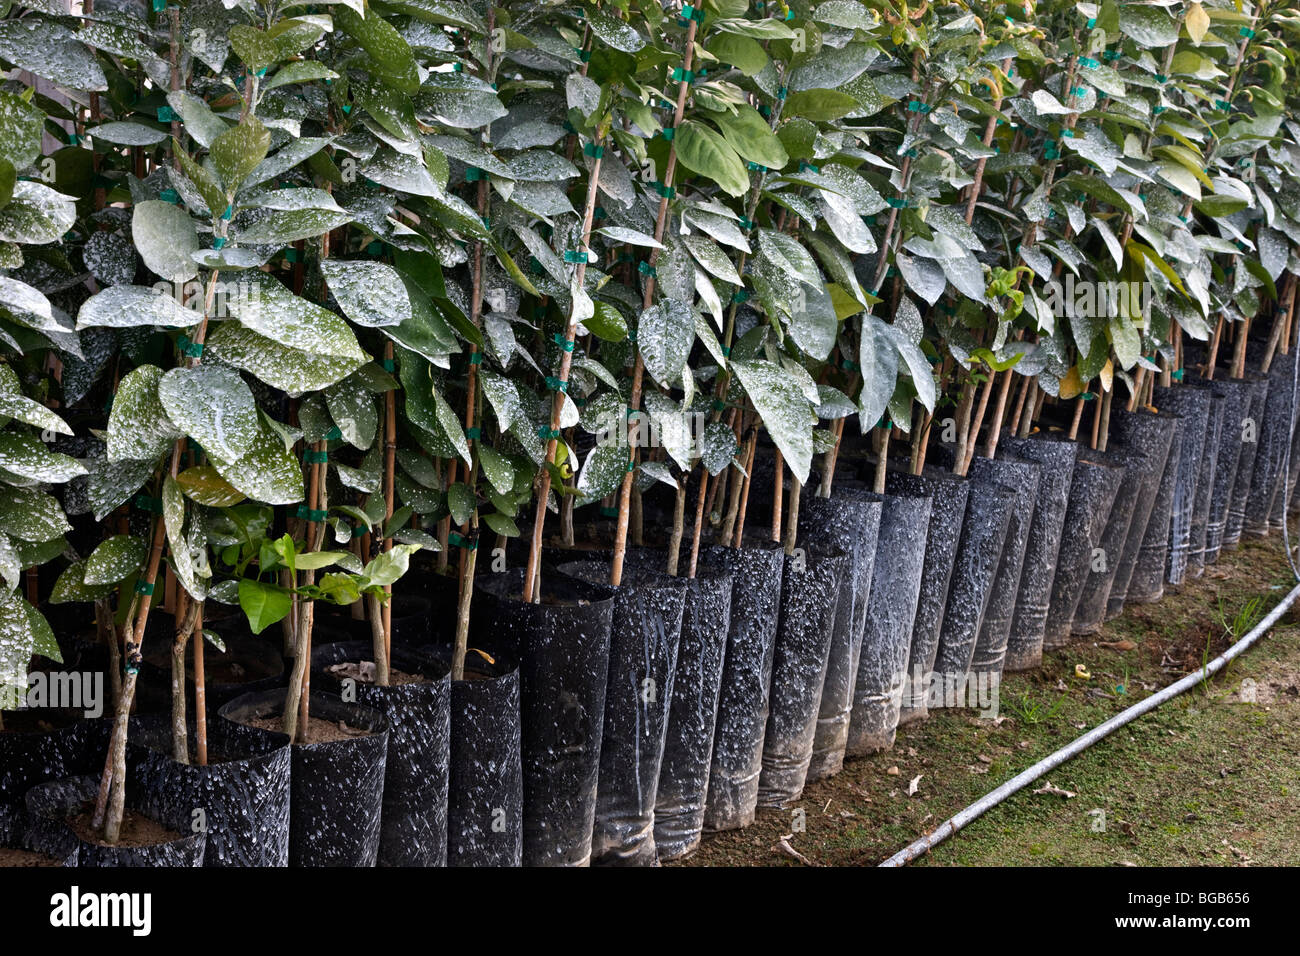 Citrus cuttings planted in propagating containers. - Stock Image